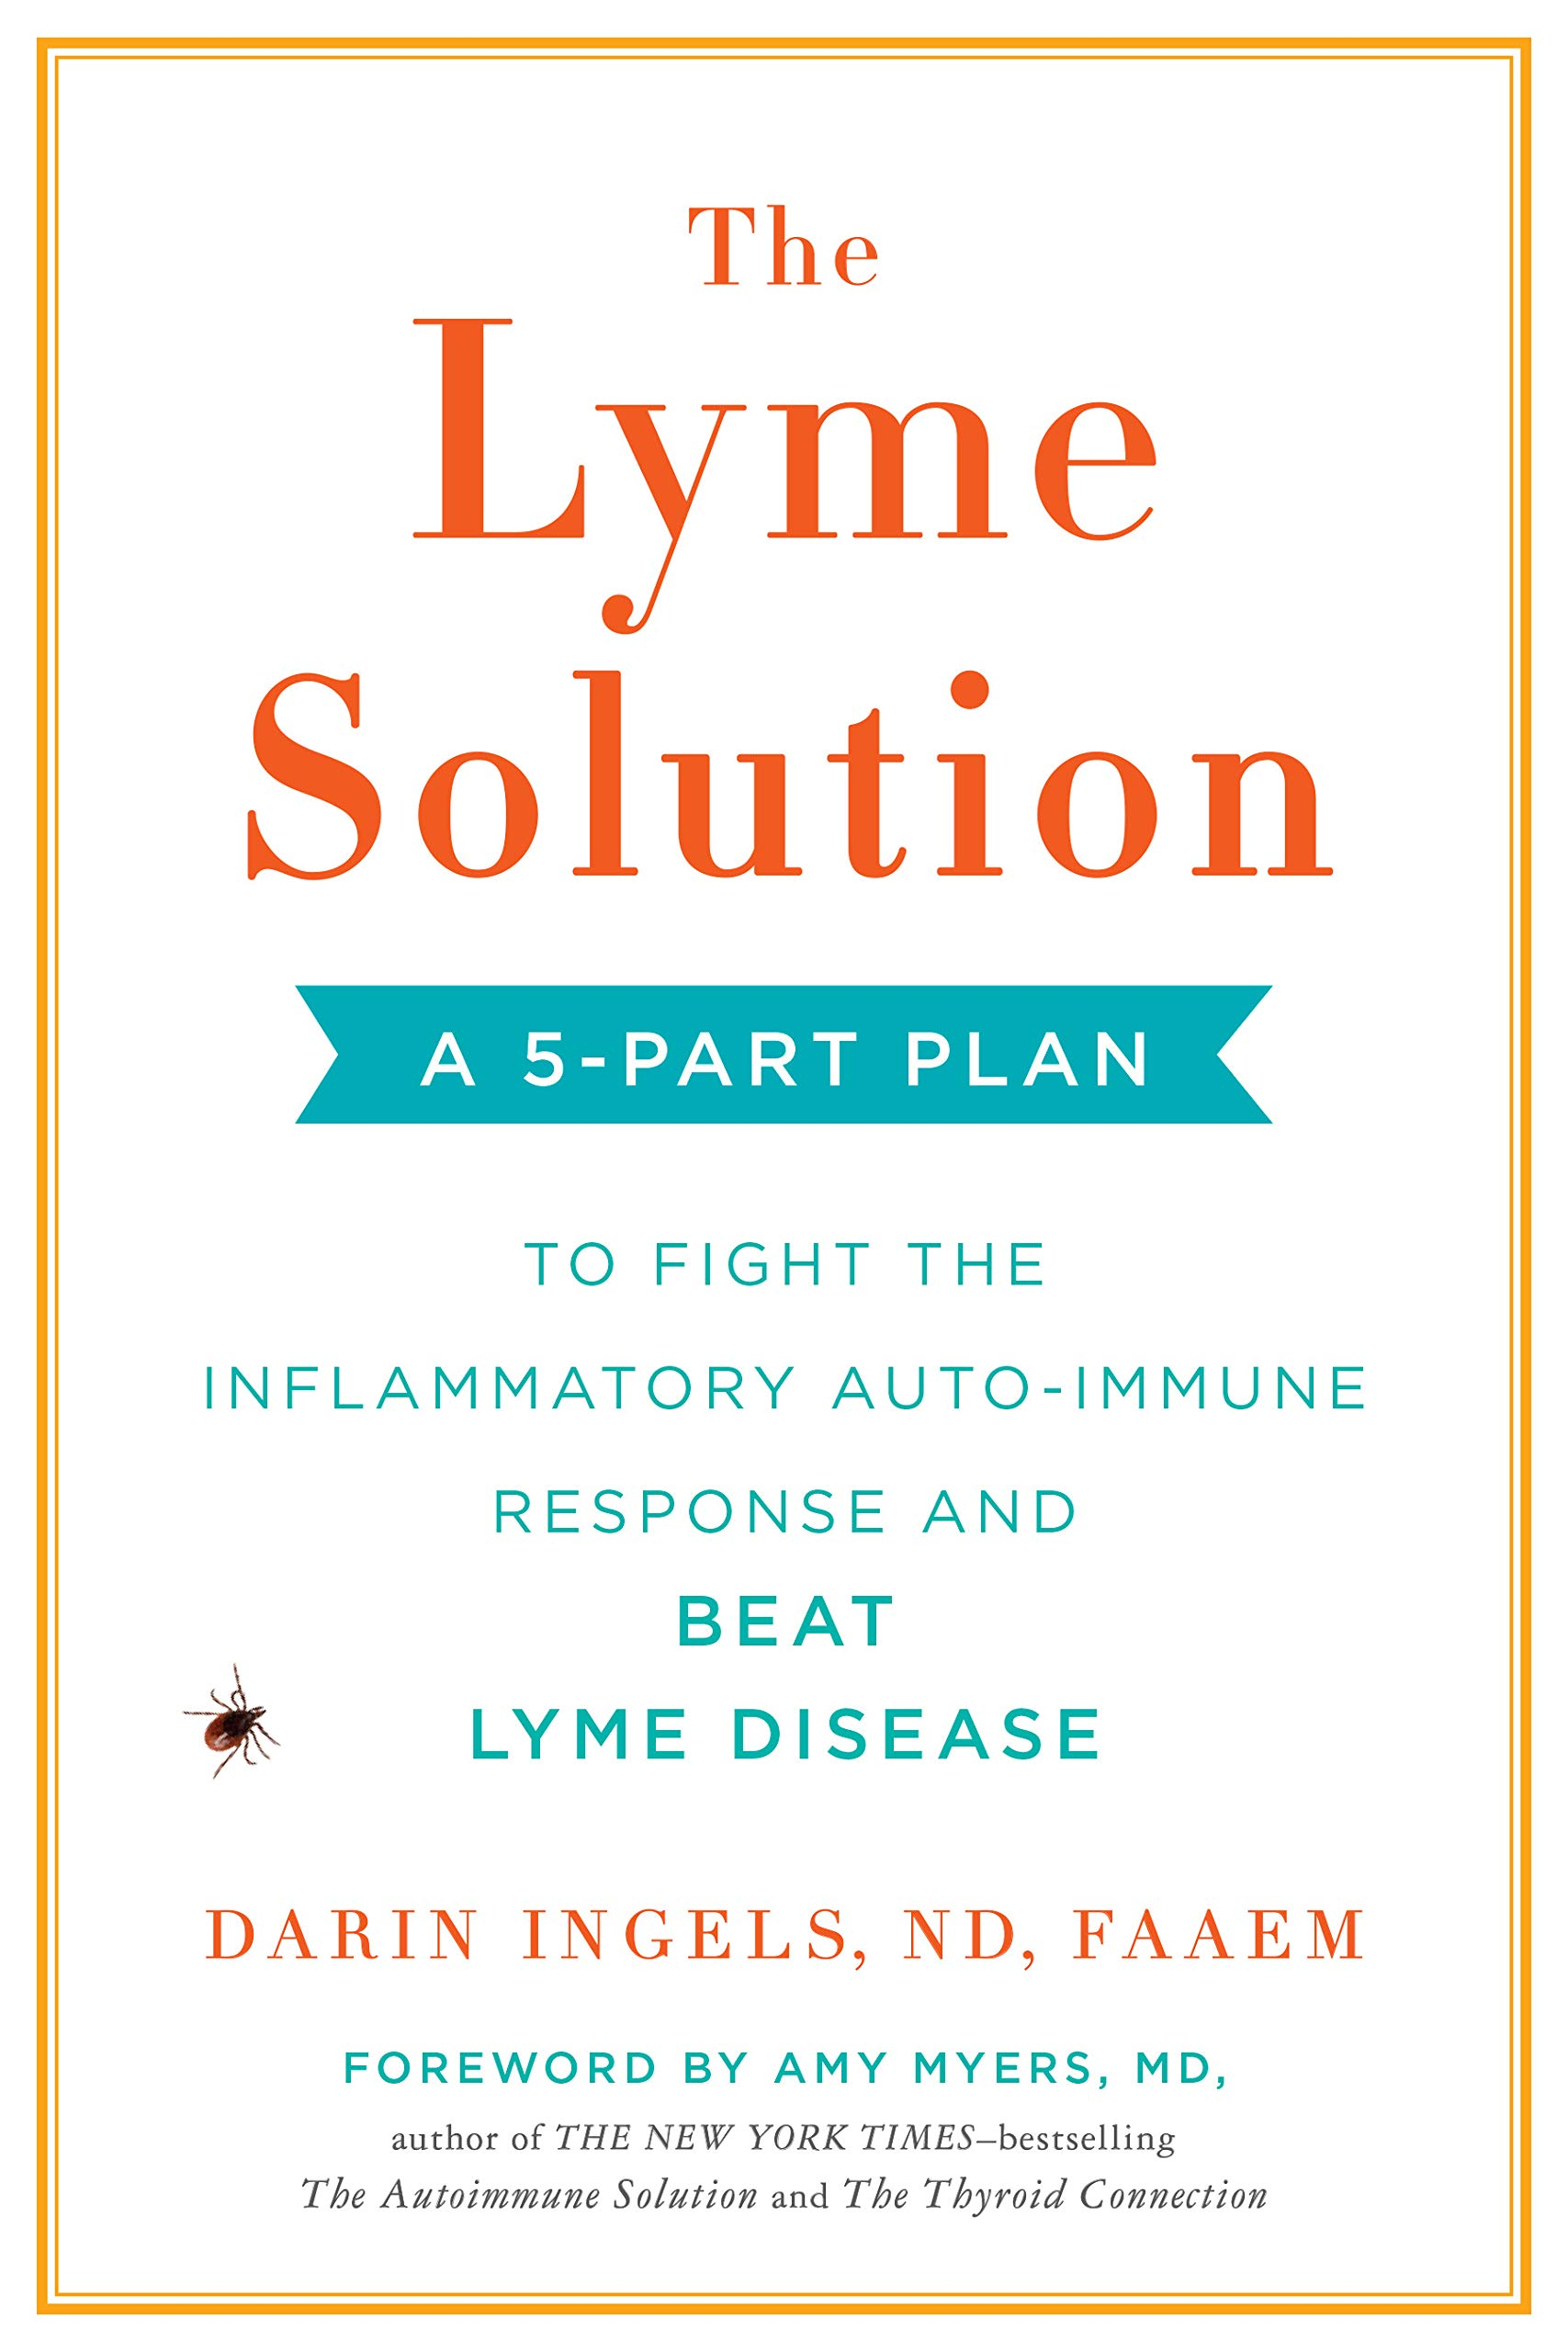 No Autism Is Not Caused By Lyme Disease >> The Lyme Solution A 5 Part Plan To Fight The Inflammatory